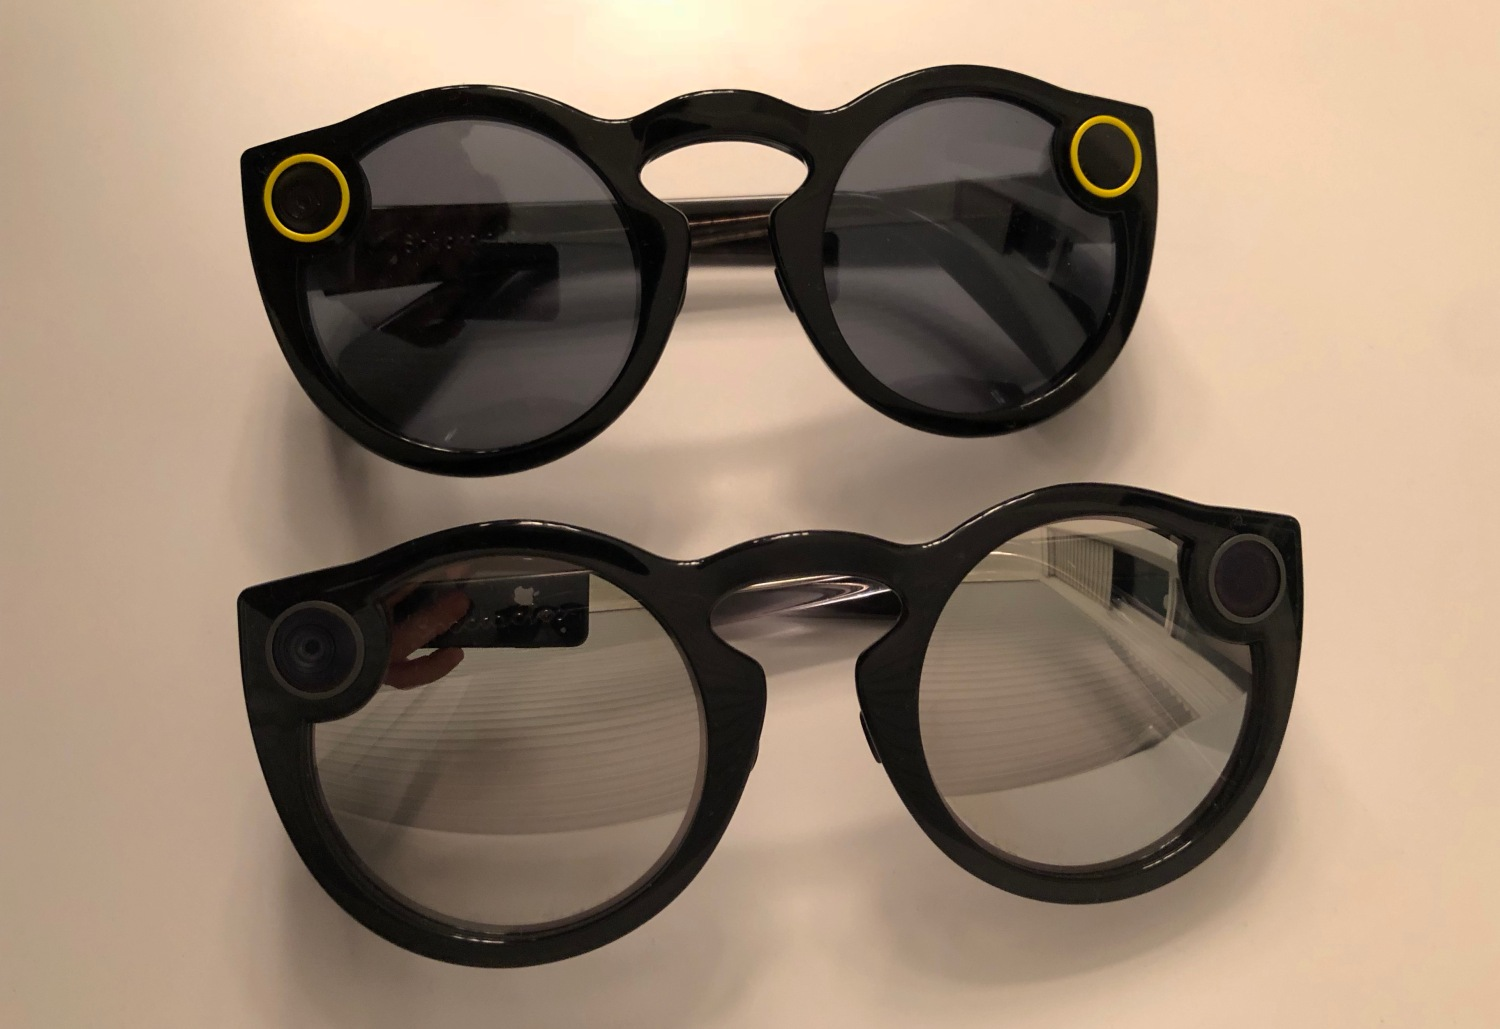 b2d765446976 Snaapchat Spectacles Front View V1 vs V2